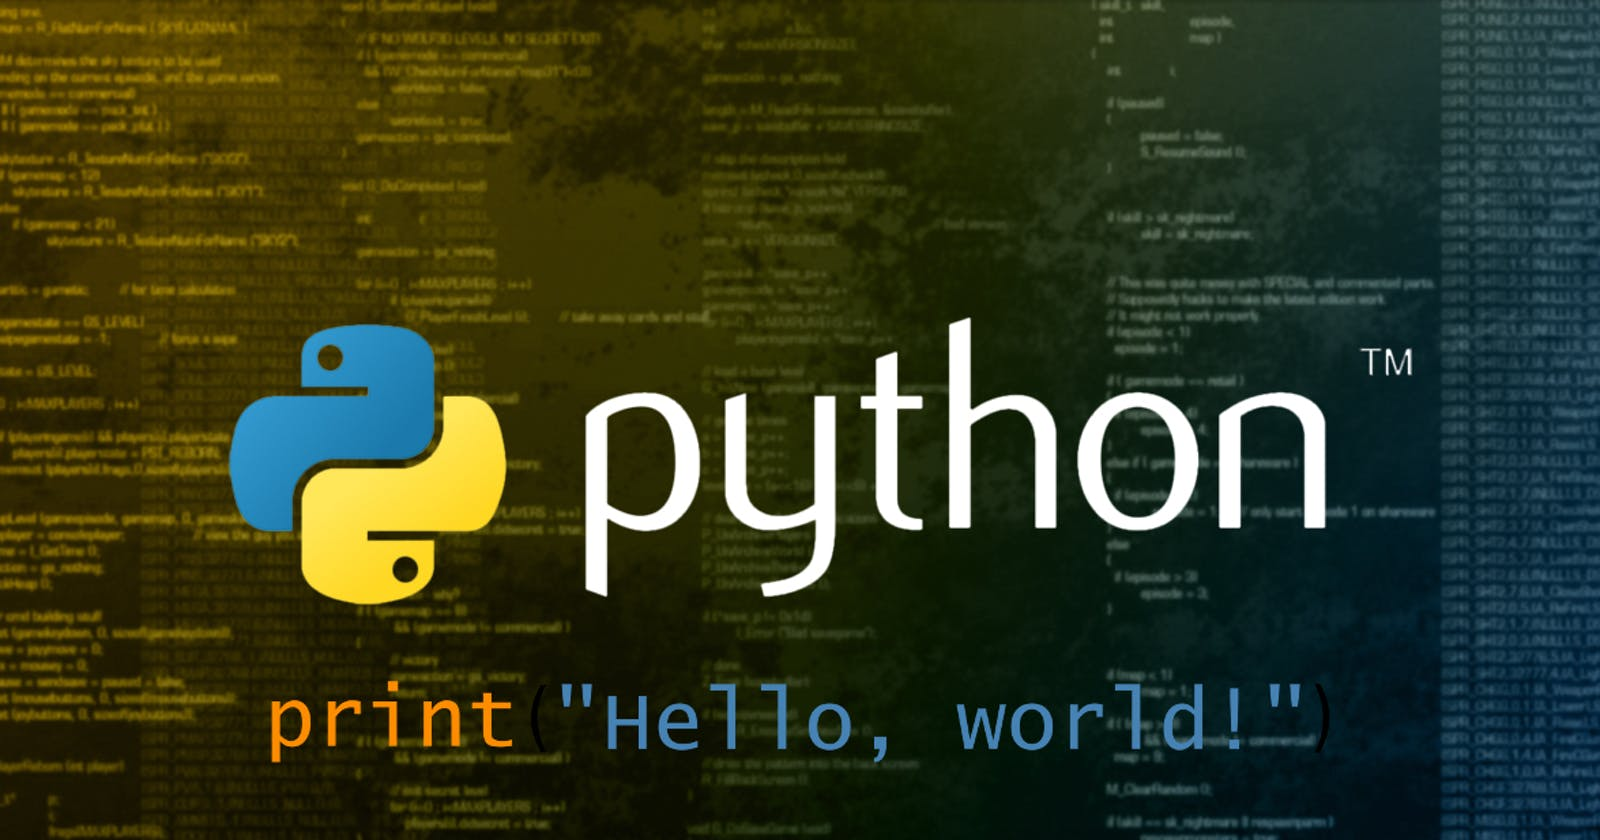 How I Have Become A Self-Taught Python Developer